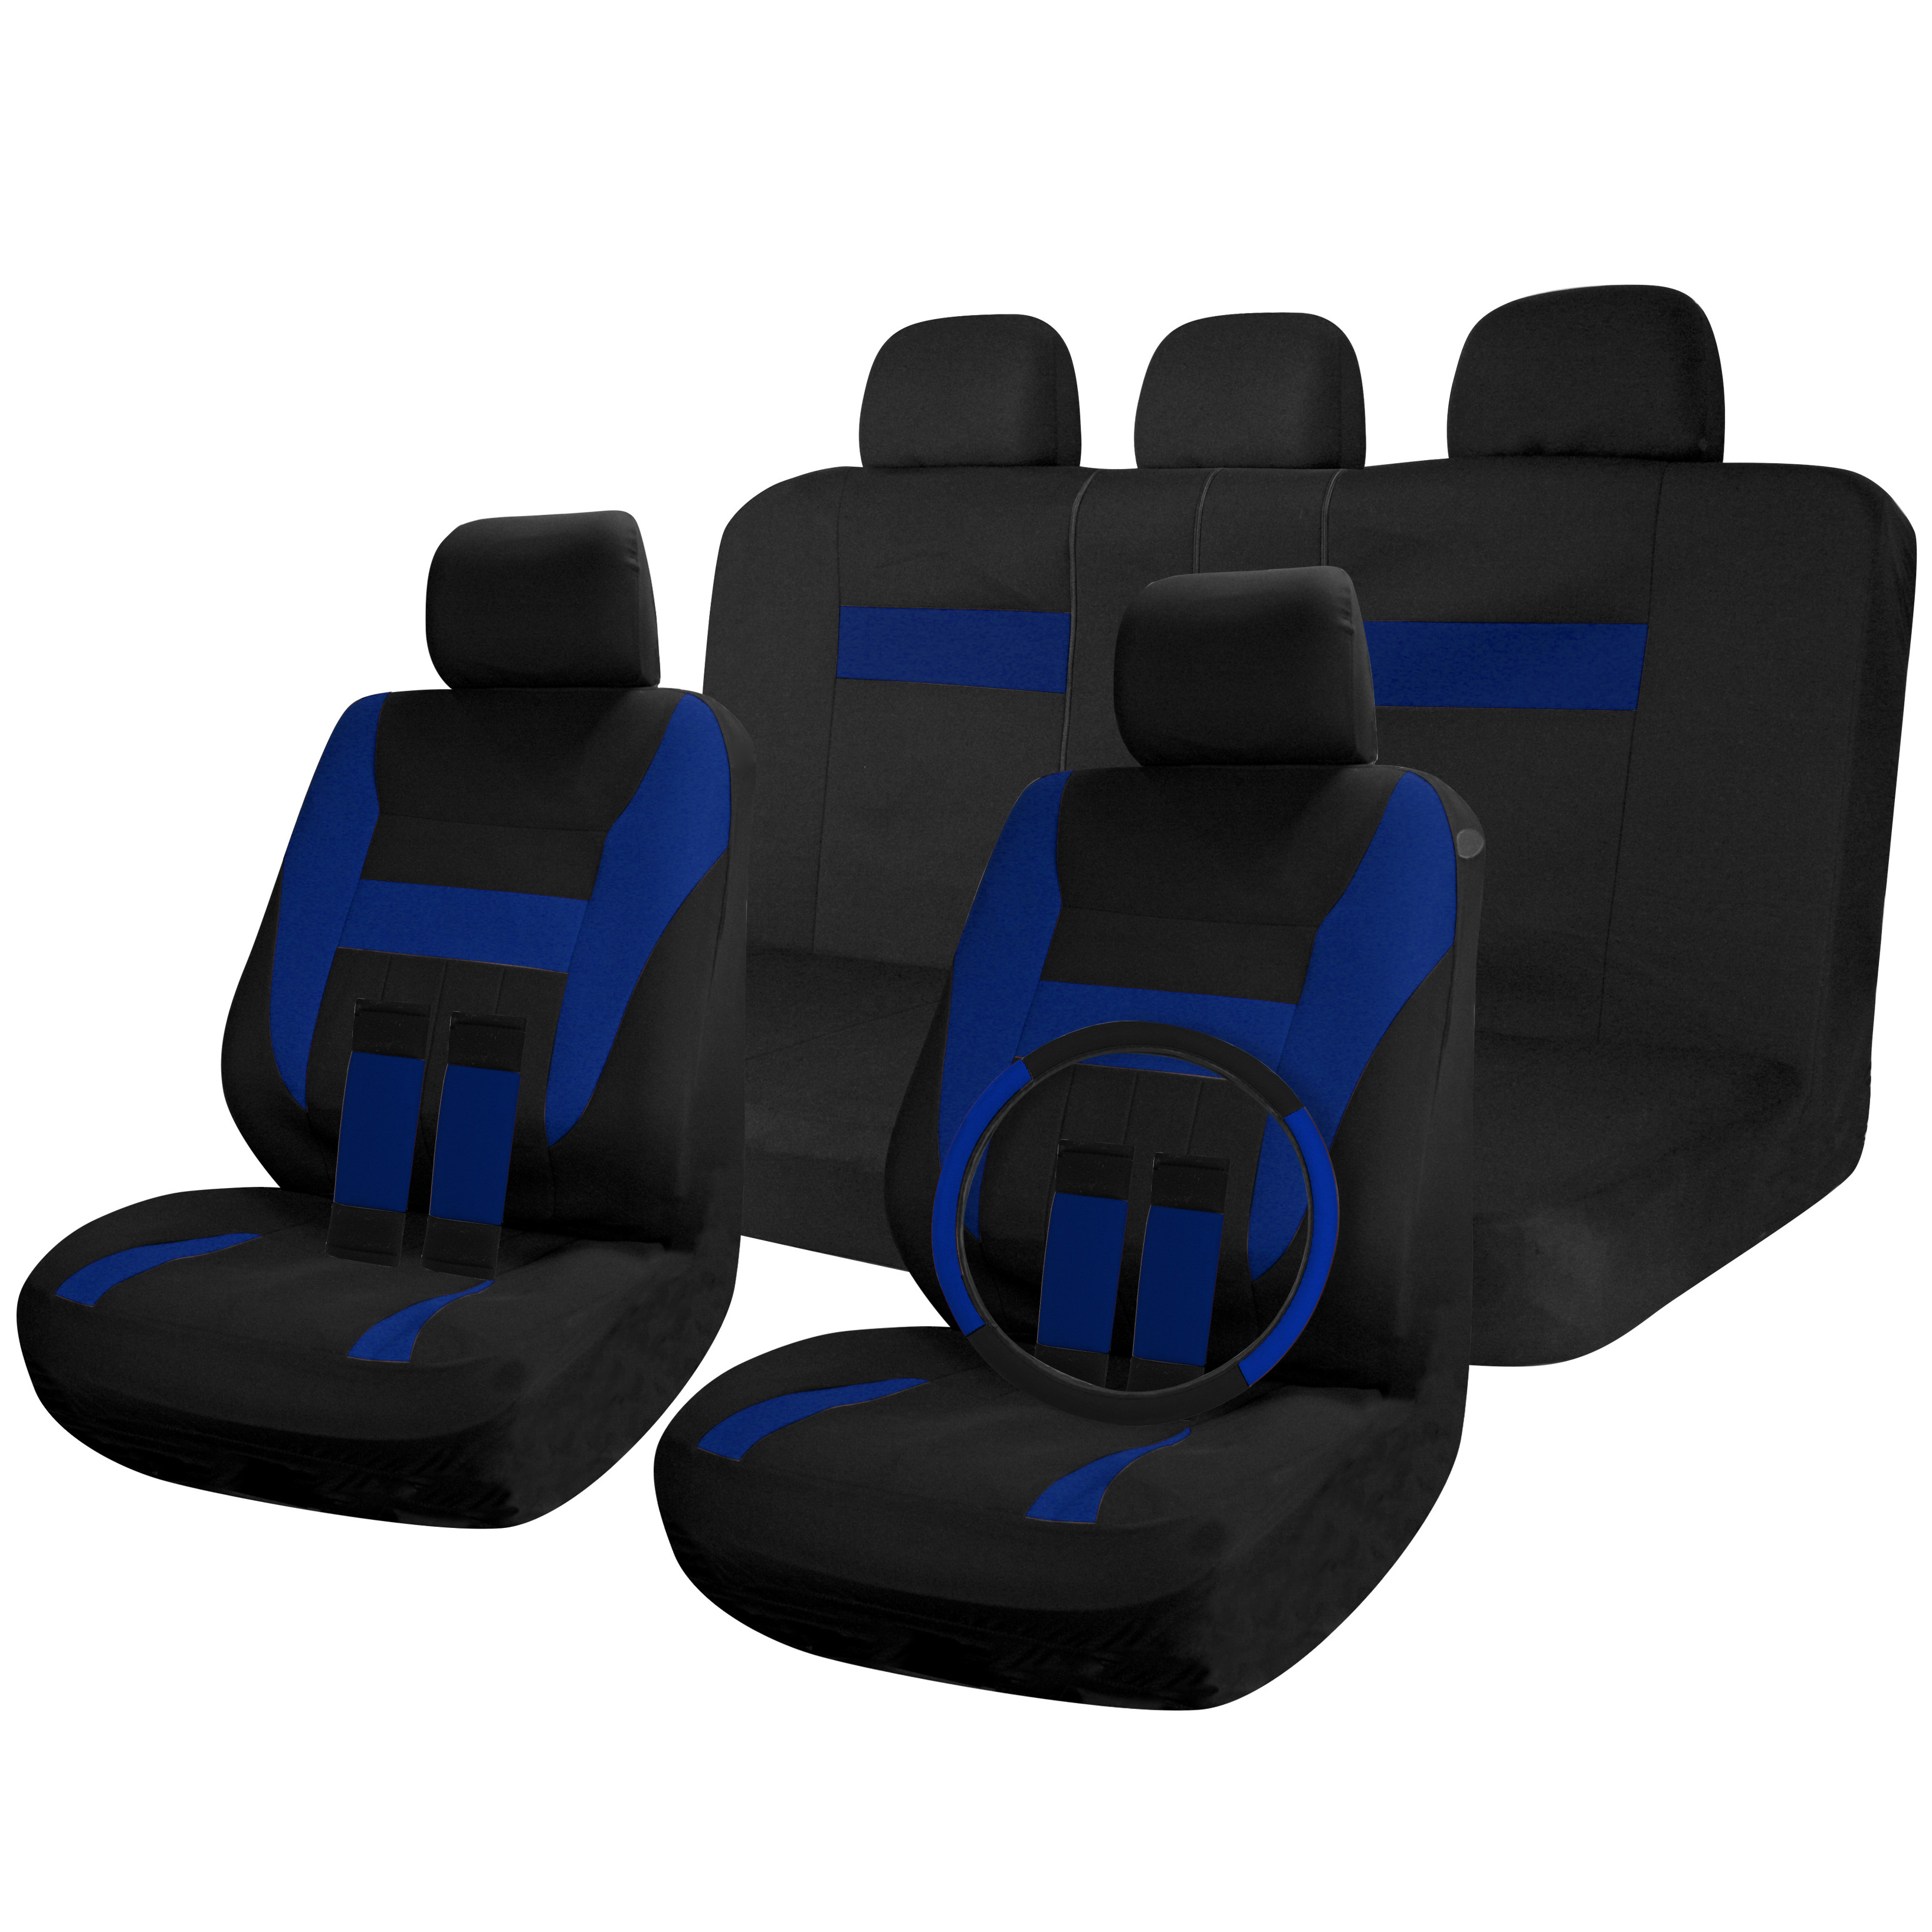 Car Seat Covers Black Blue 17pc Full Set For Auto Seats